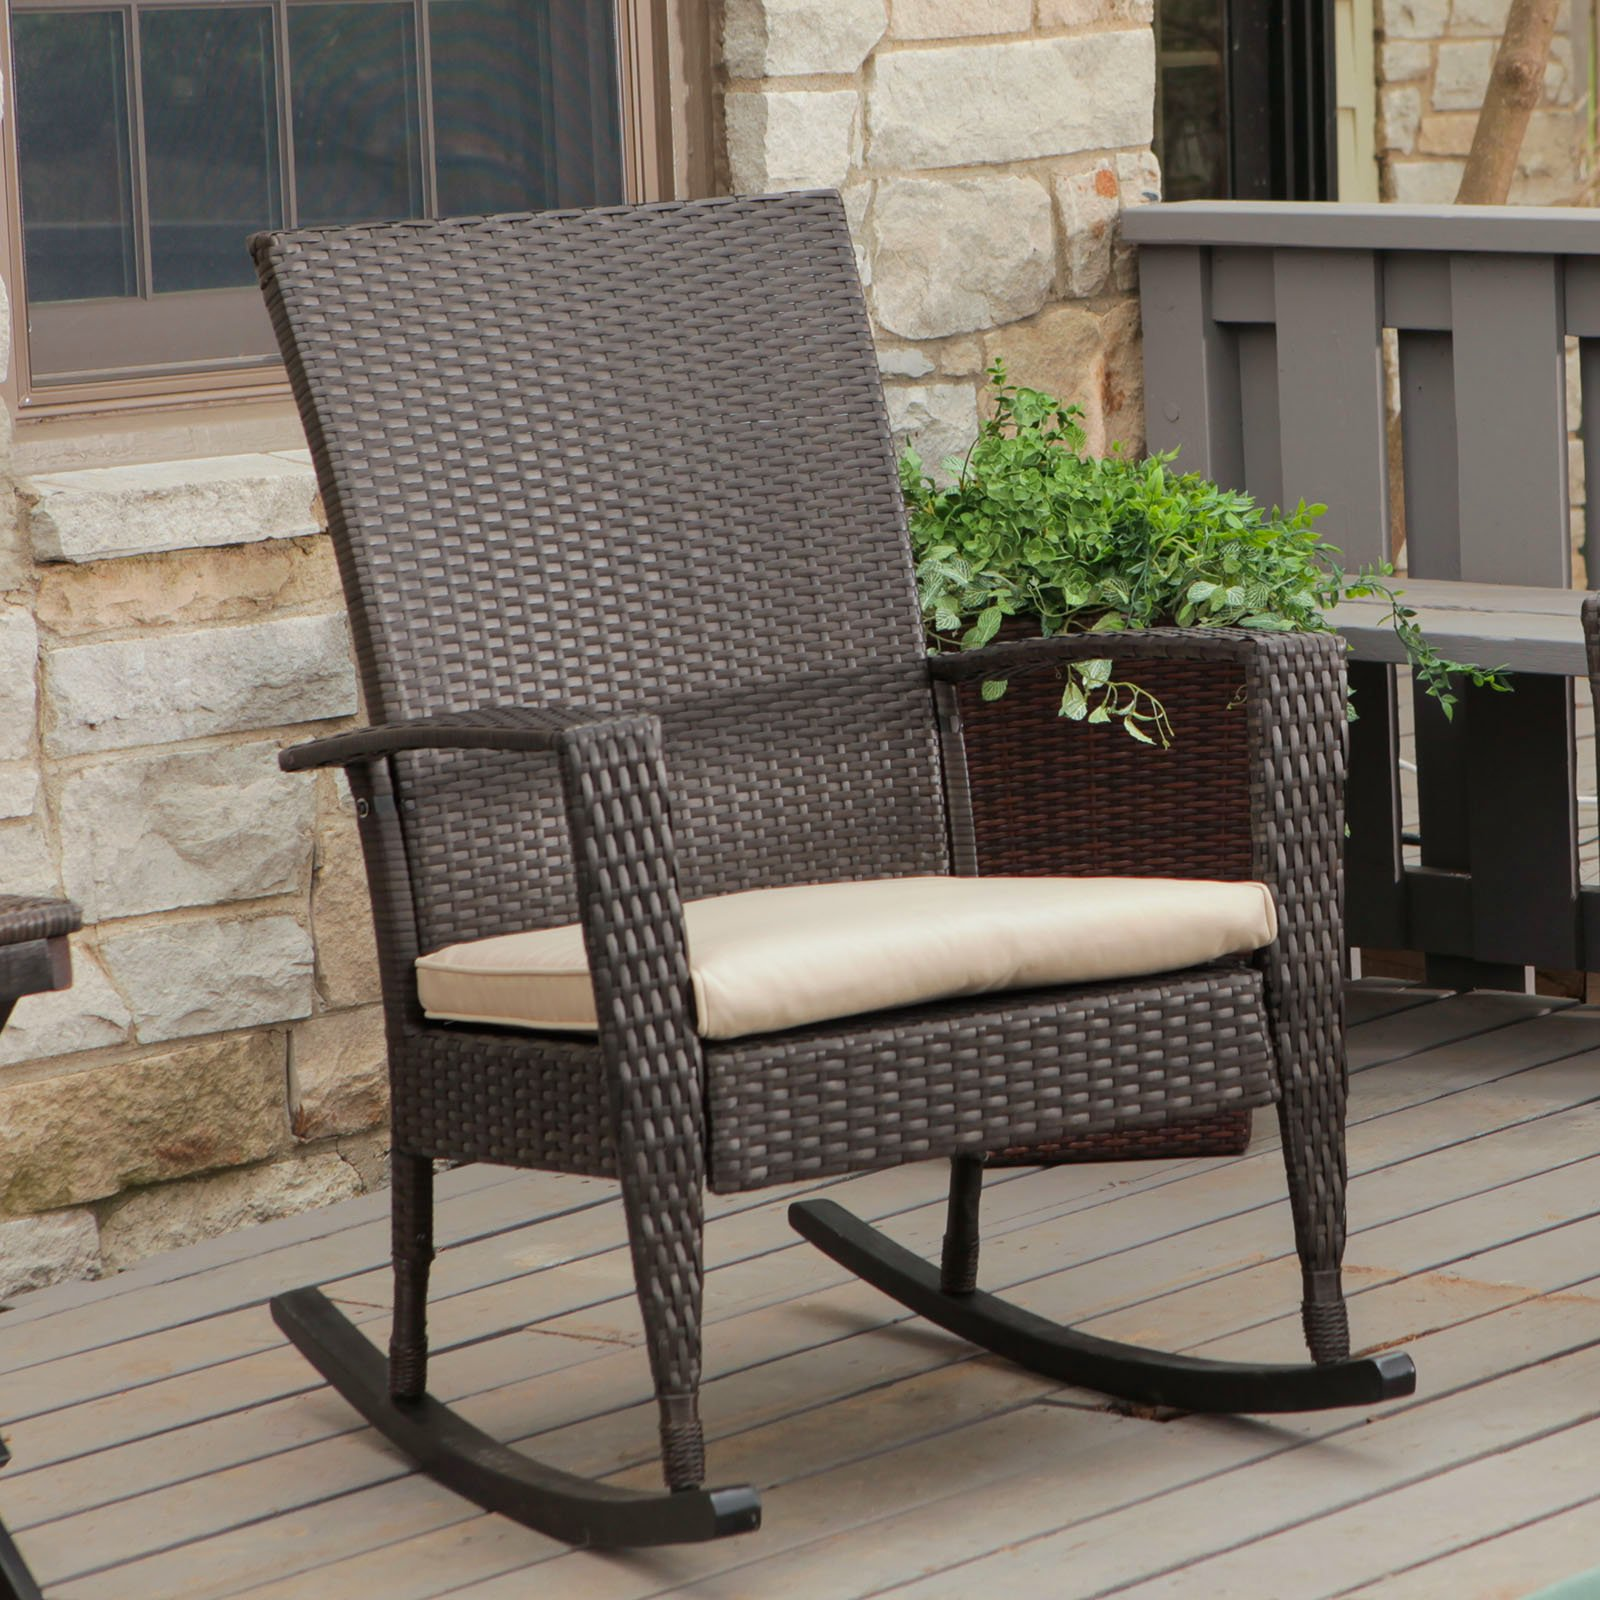 Image of: Outside Rocking Chairs Ideas